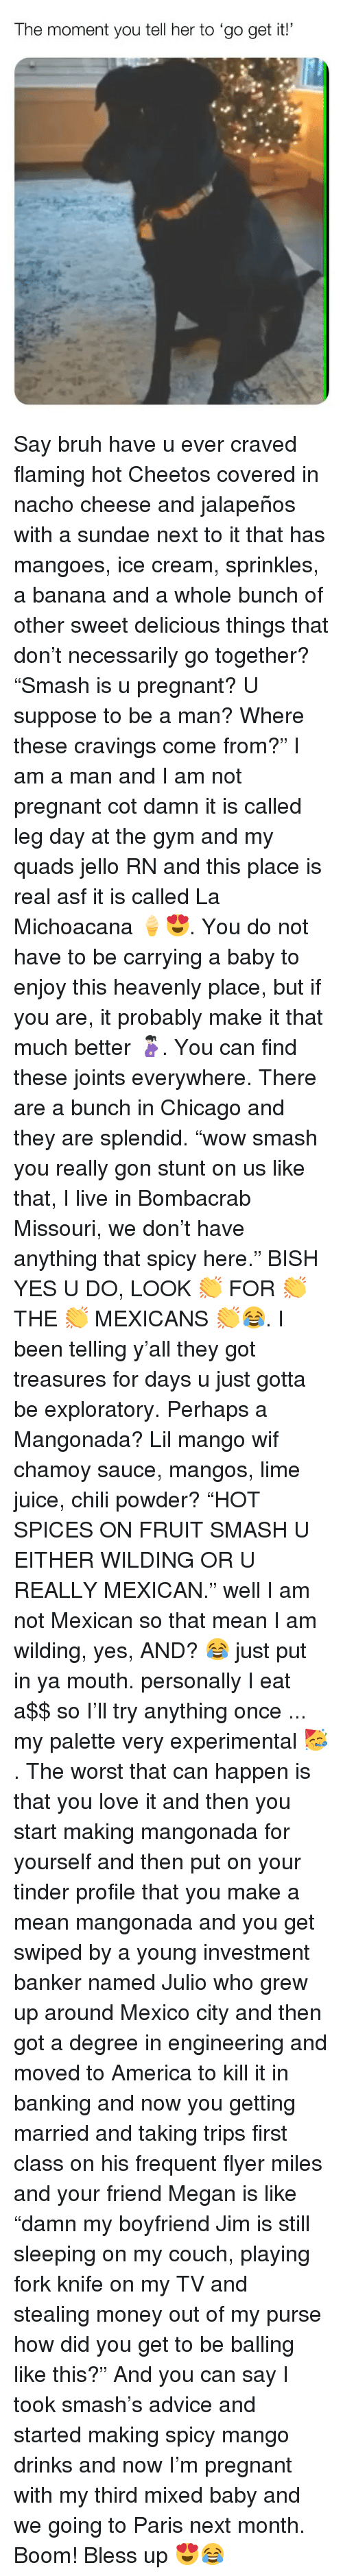 """Advice, America, and Bless Up: The moment you tell her to 'go get it! Say bruh have u ever craved flaming hot Cheetos covered in nacho cheese and jalapeños with a sundae next to it that has mangoes, ice cream, sprinkles, a banana and a whole bunch of other sweet delicious things that don't necessarily go together? """"Smash is u pregnant? U suppose to be a man? Where these cravings come from?"""" I am a man and I am not pregnant cot damn it is called leg day at the gym and my quads jello RN and this place is real asf it is called La Michoacana 🍦😍. You do not have to be carrying a baby to enjoy this heavenly place, but if you are, it probably make it that much better 🤰🏻. You can find these joints everywhere. There are a bunch in Chicago and they are splendid. """"wow smash you really gon stunt on us like that, I live in Bombacrab Missouri, we don't have anything that spicy here."""" BISH YES U DO, LOOK 👏 FOR 👏 THE 👏 MEXICANS 👏😂. I been telling y'all they got treasures for days u just gotta be exploratory. Perhaps a Mangonada? Lil mango wif chamoy sauce, mangos, lime juice, chili powder? """"HOT SPICES ON FRUIT SMASH U EITHER WILDING OR U REALLY MEXICAN."""" well I am not Mexican so that mean I am wilding, yes, AND? 😂 just put in ya mouth. personally I eat a$$ so I'll try anything once ... my palette very experimental 🥳. The worst that can happen is that you love it and then you start making mangonada for yourself and then put on your tinder profile that you make a mean mangonada and you get swiped by a young investment banker named Julio who grew up around Mexico city and then got a degree in engineering and moved to America to kill it in banking and now you getting married and taking trips first class on his frequent flyer miles and your friend Megan is like """"damn my boyfriend Jim is still sleeping on my couch, playing fork knife on my TV and stealing money out of my purse how did you get to be balling like this?"""" And you can say I took smash's advice and started making spicy mango d"""